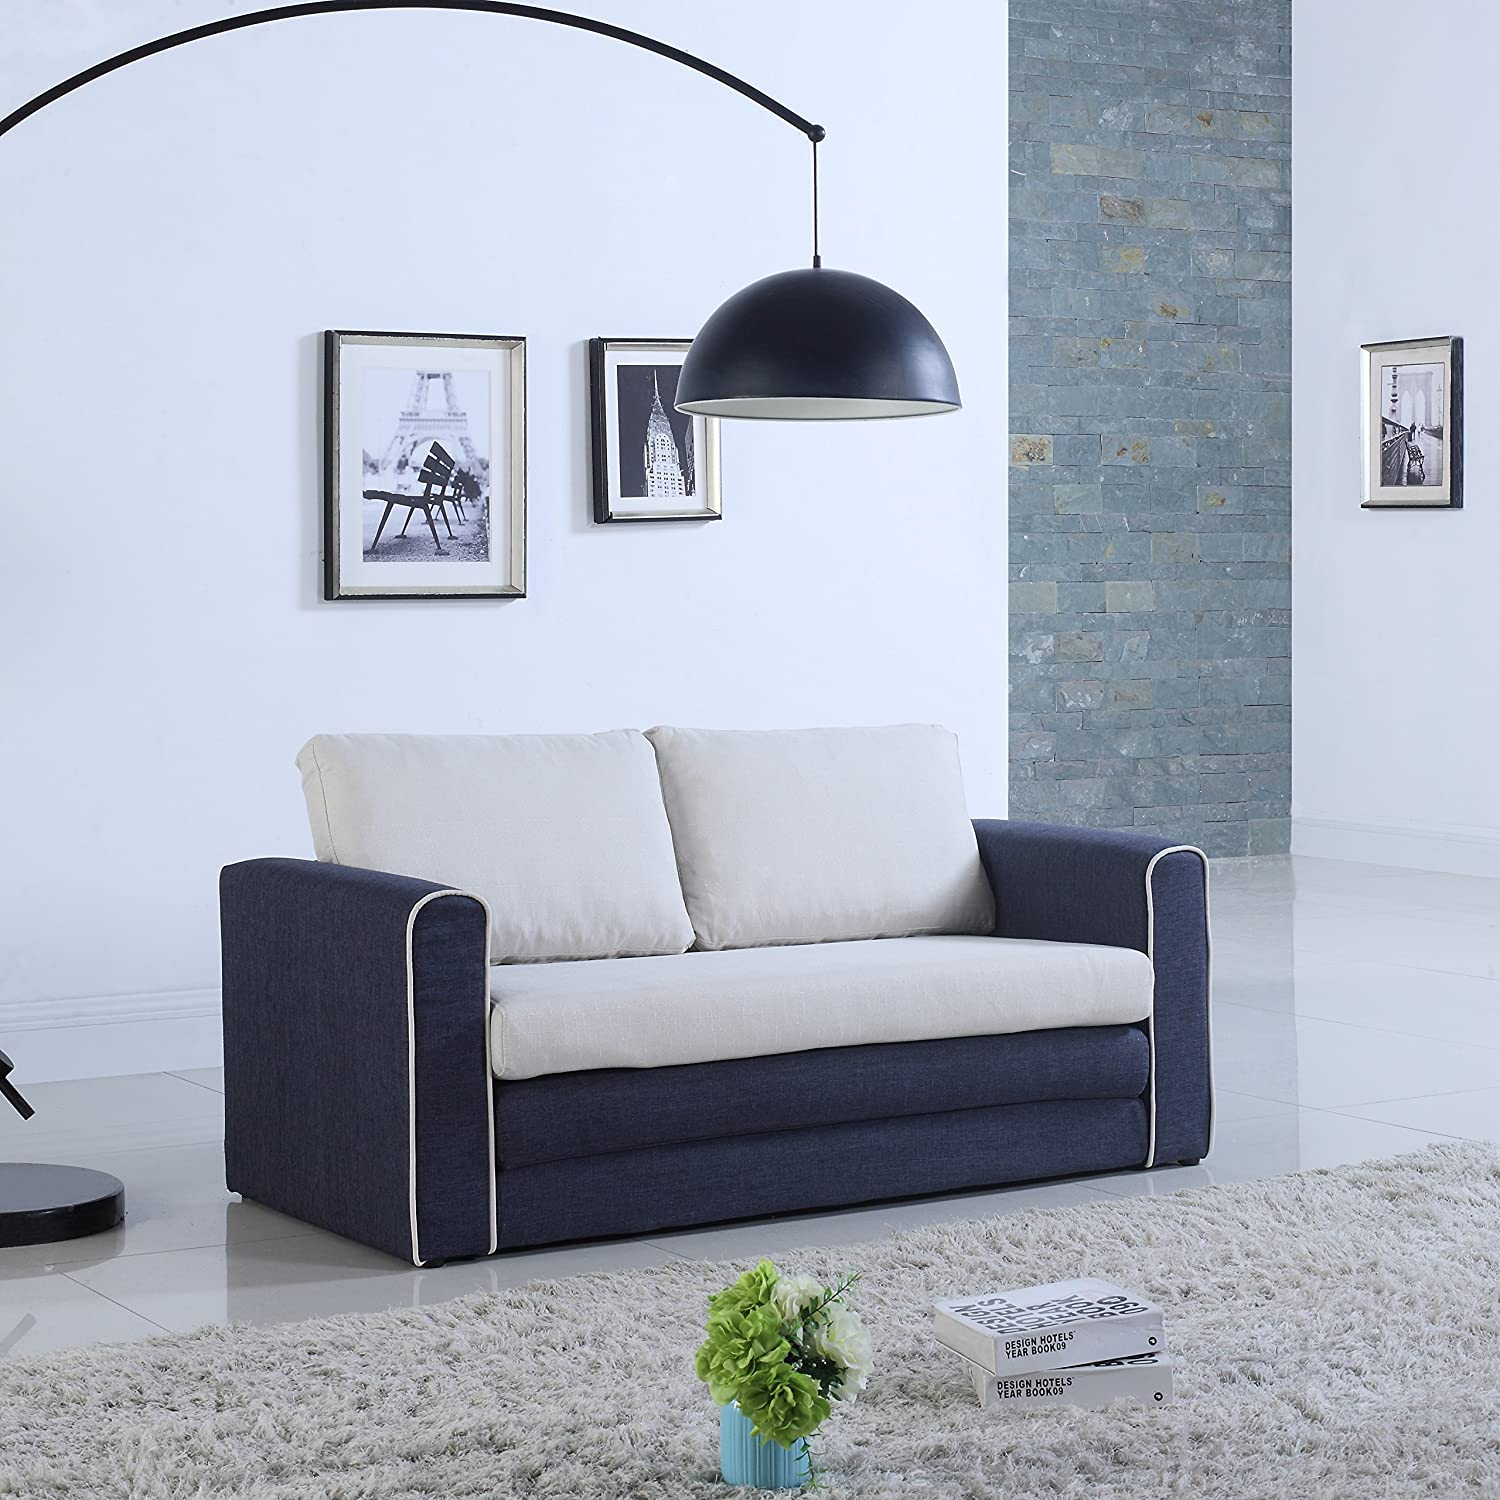 DIVANO ROMA FURNITURE MODERN SOFA